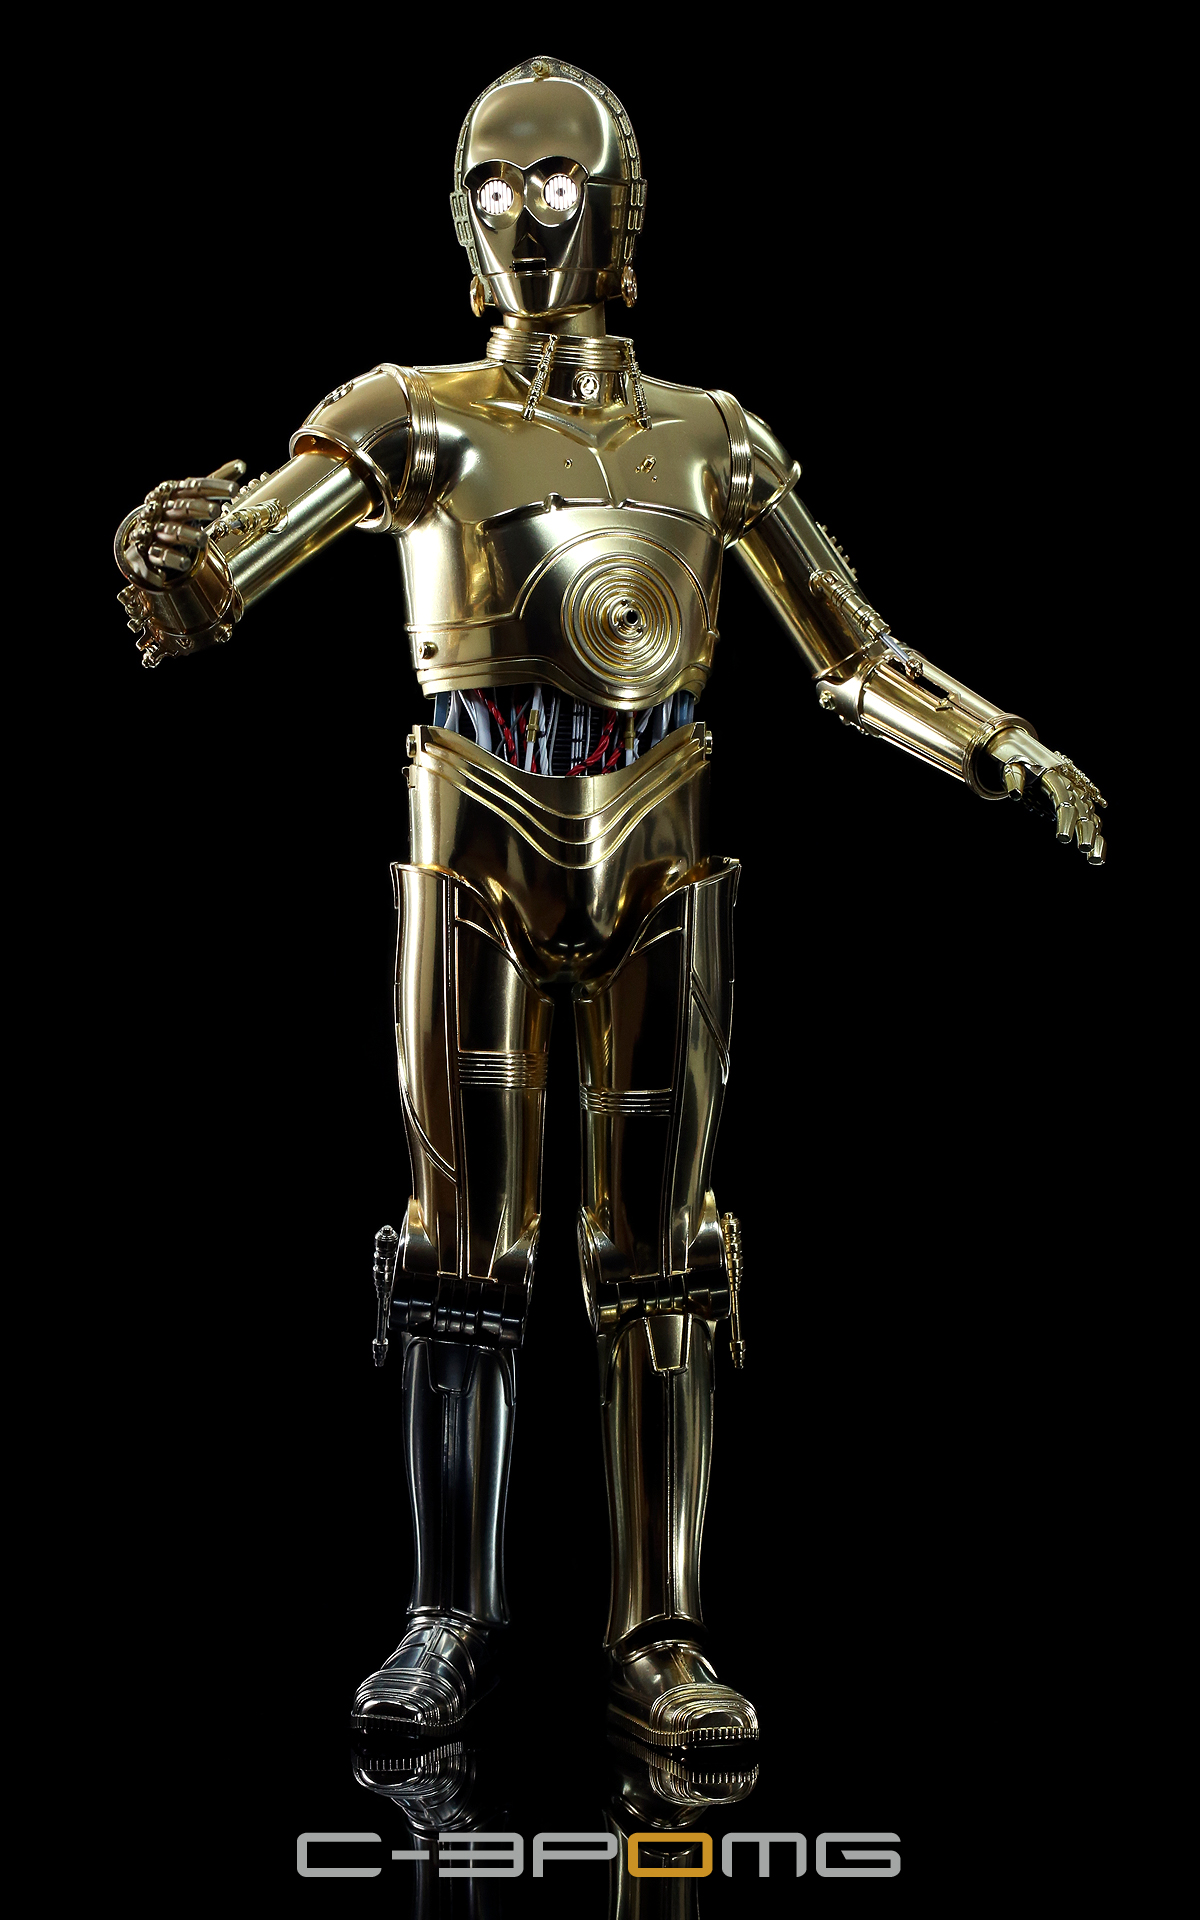 [Bandai] Star Wars: C-3PO - Perfect Model 1/6 scale - LANÇADO!!! - Página 2 C-3PO1014_zps43ee26d2